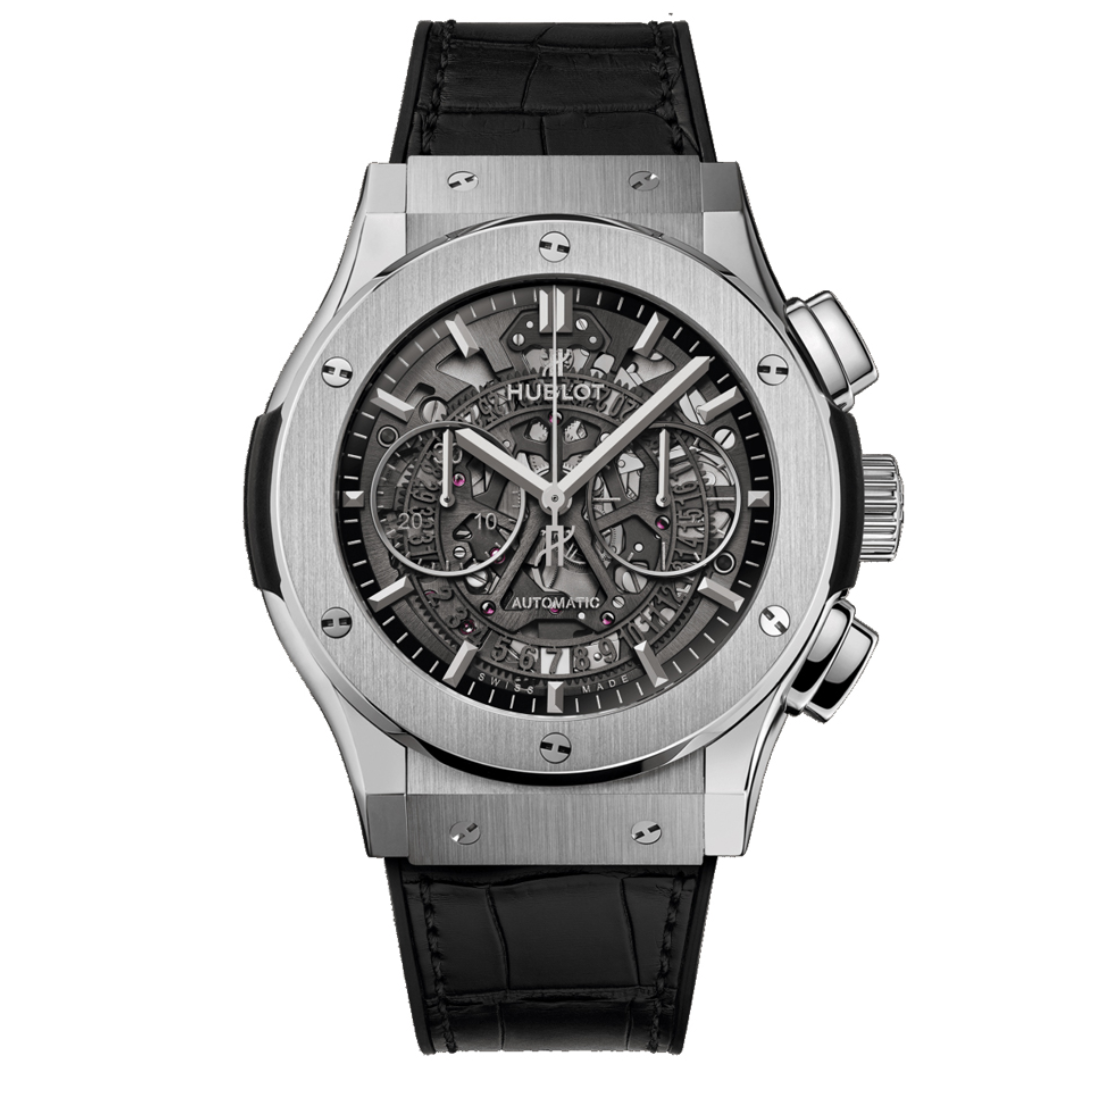 Hublot Classic Fusion Aerofusion Titanium watch for the guys who love arm candy